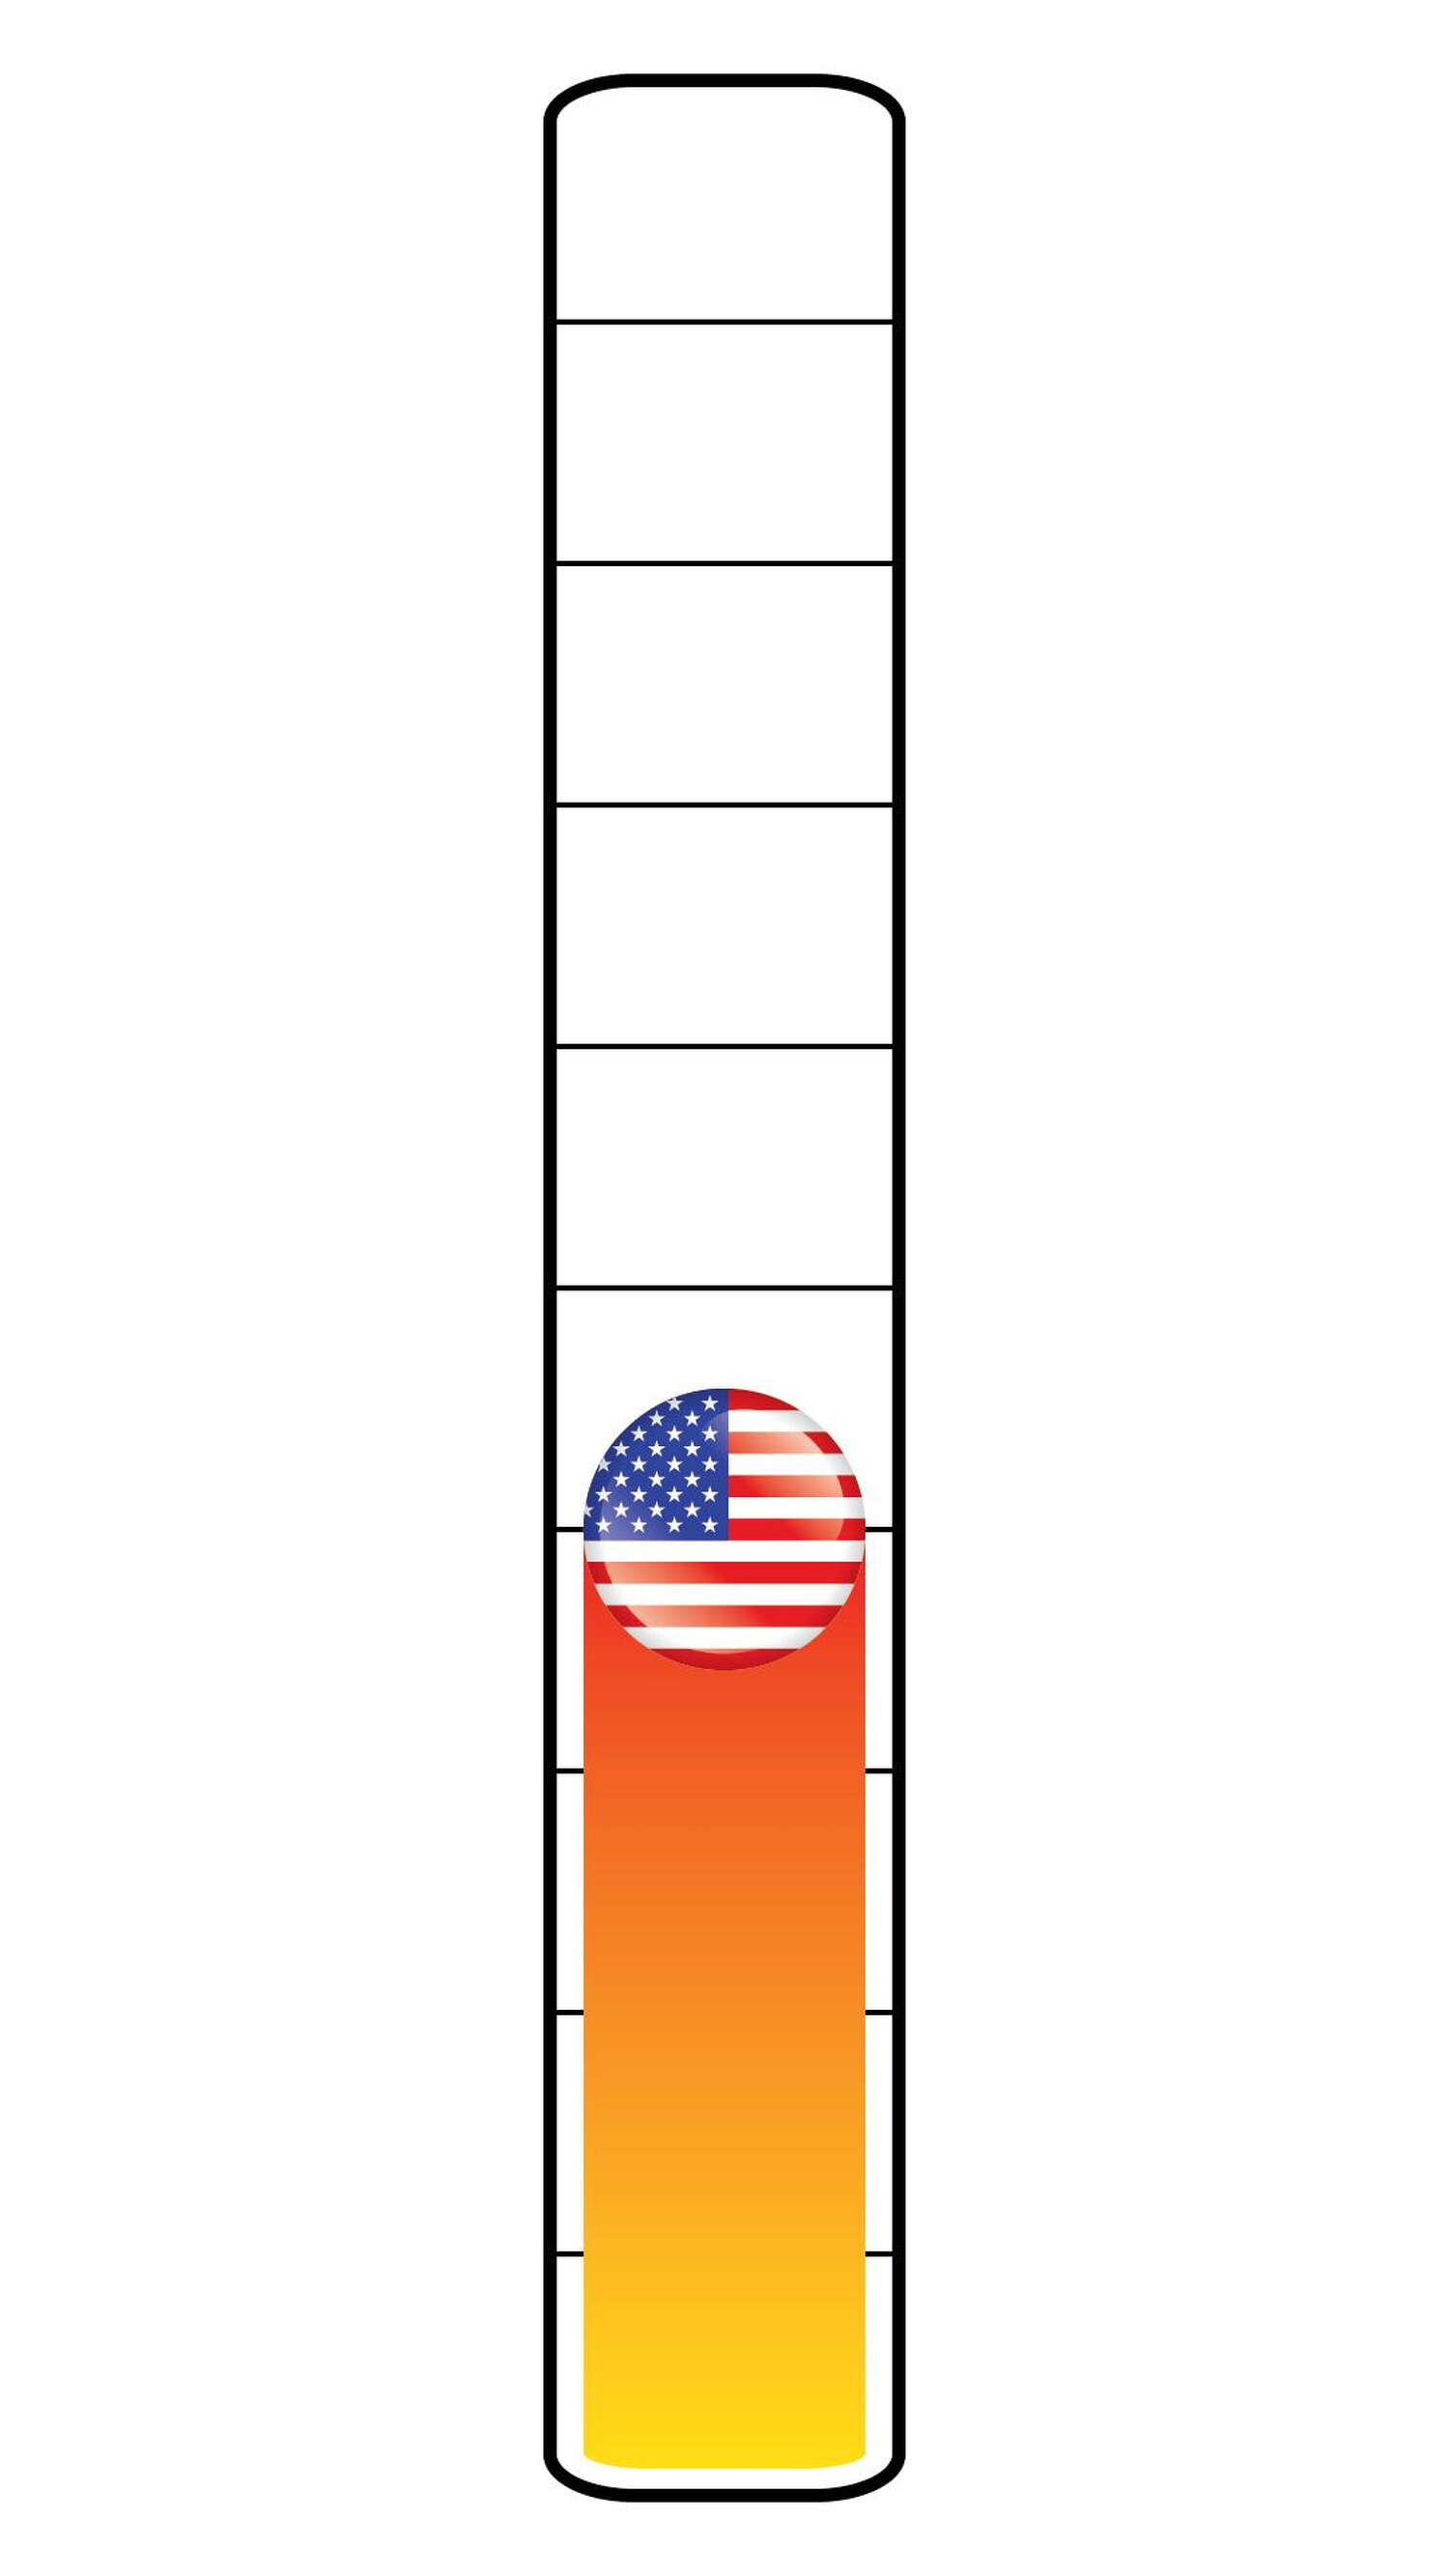 Meter: 4/10. Icon of the U.S. flag.